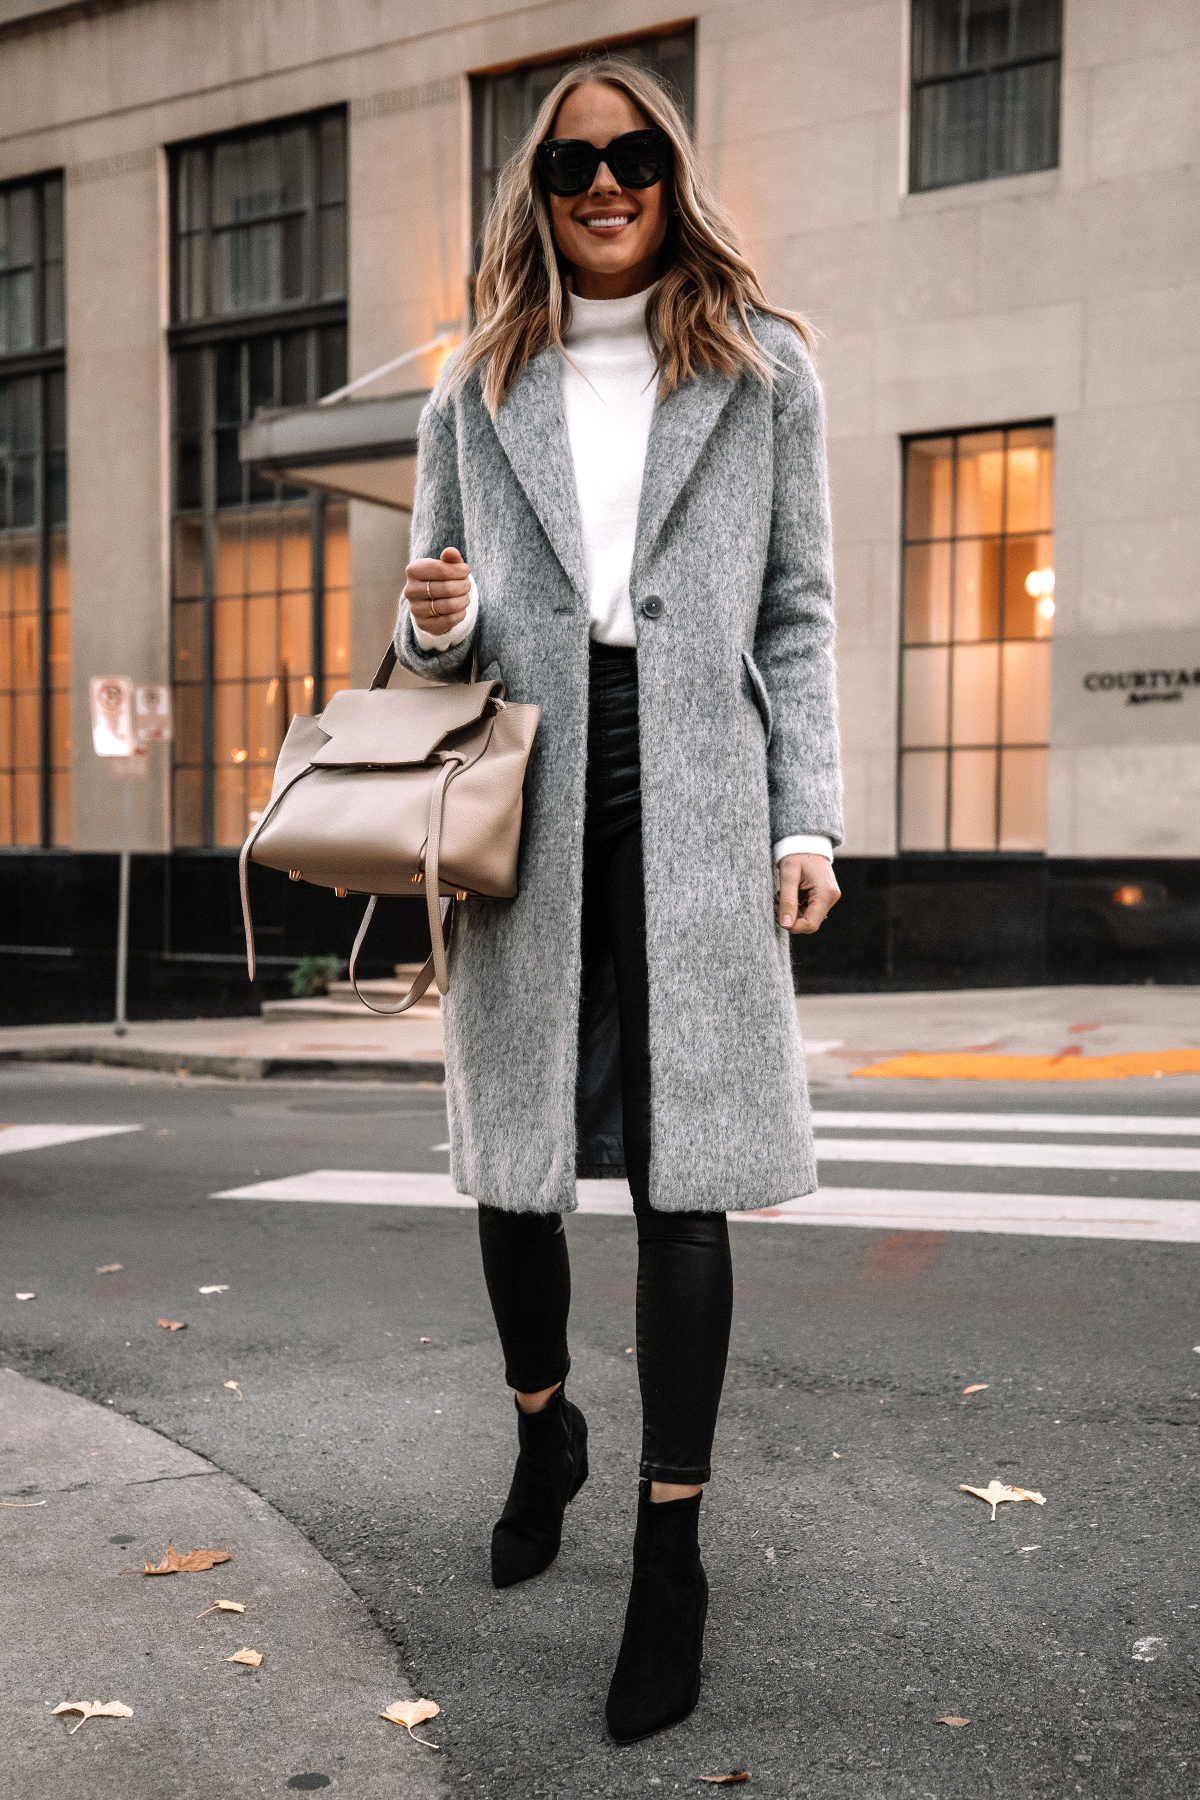 Fashion Jackson Wearing Express Long Grey Coat White Sweater Black Coated Skinny Jeans Black Suede Booties Winter Outfit Street Style